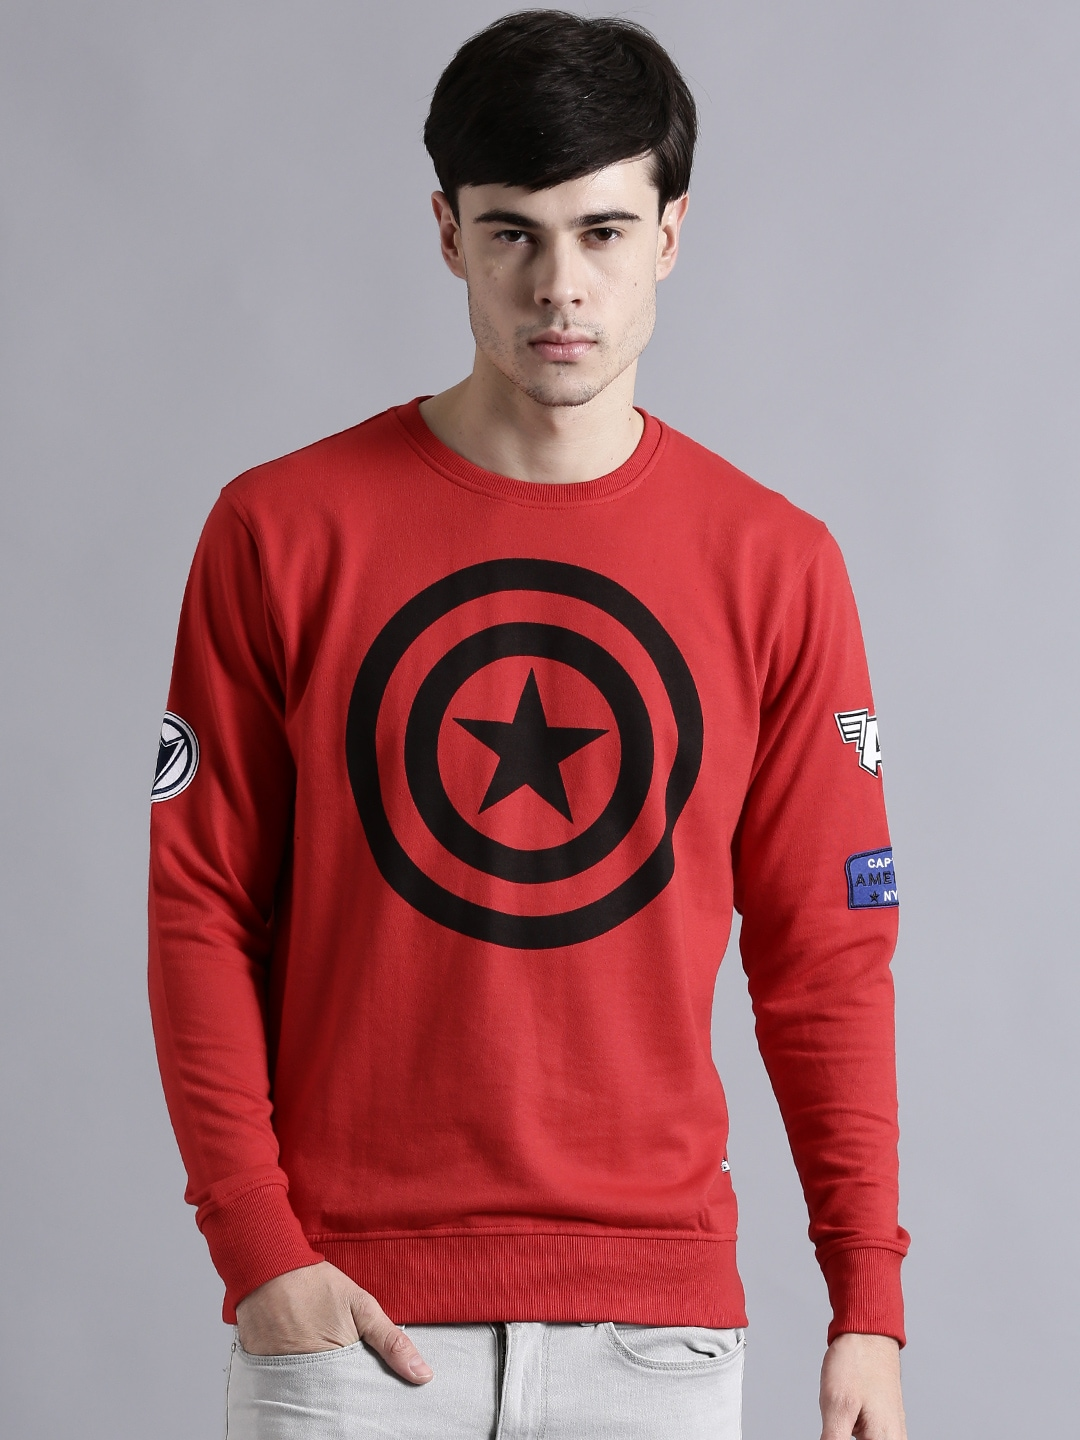 Marvel Clothing Exclusive Comics Store Online Myntra Ironman Red Tees